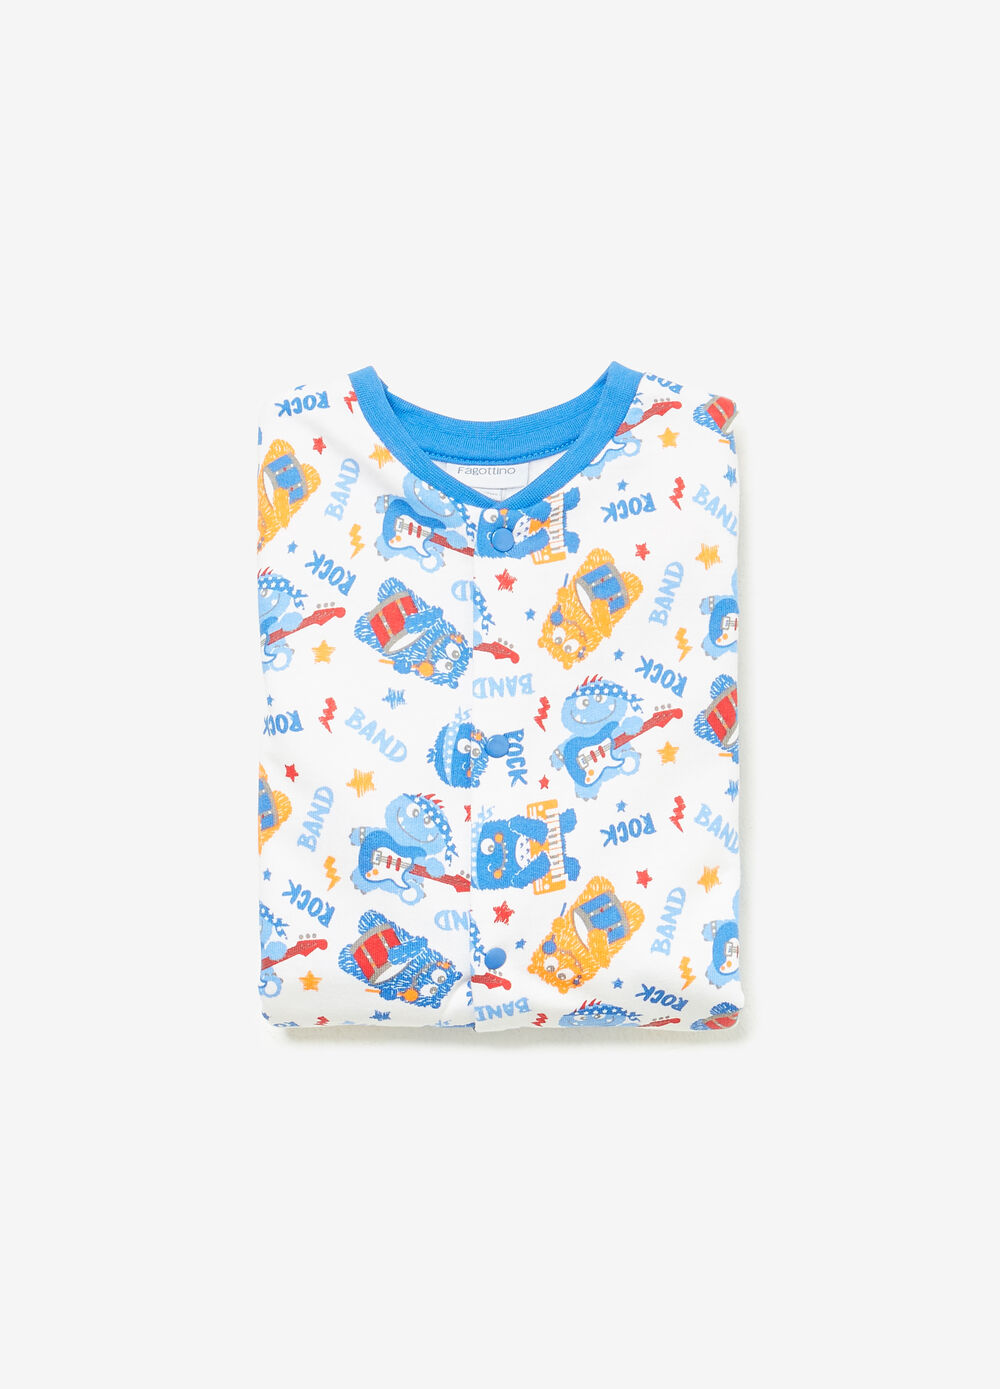 Cotton sleepsuit with monster pattern